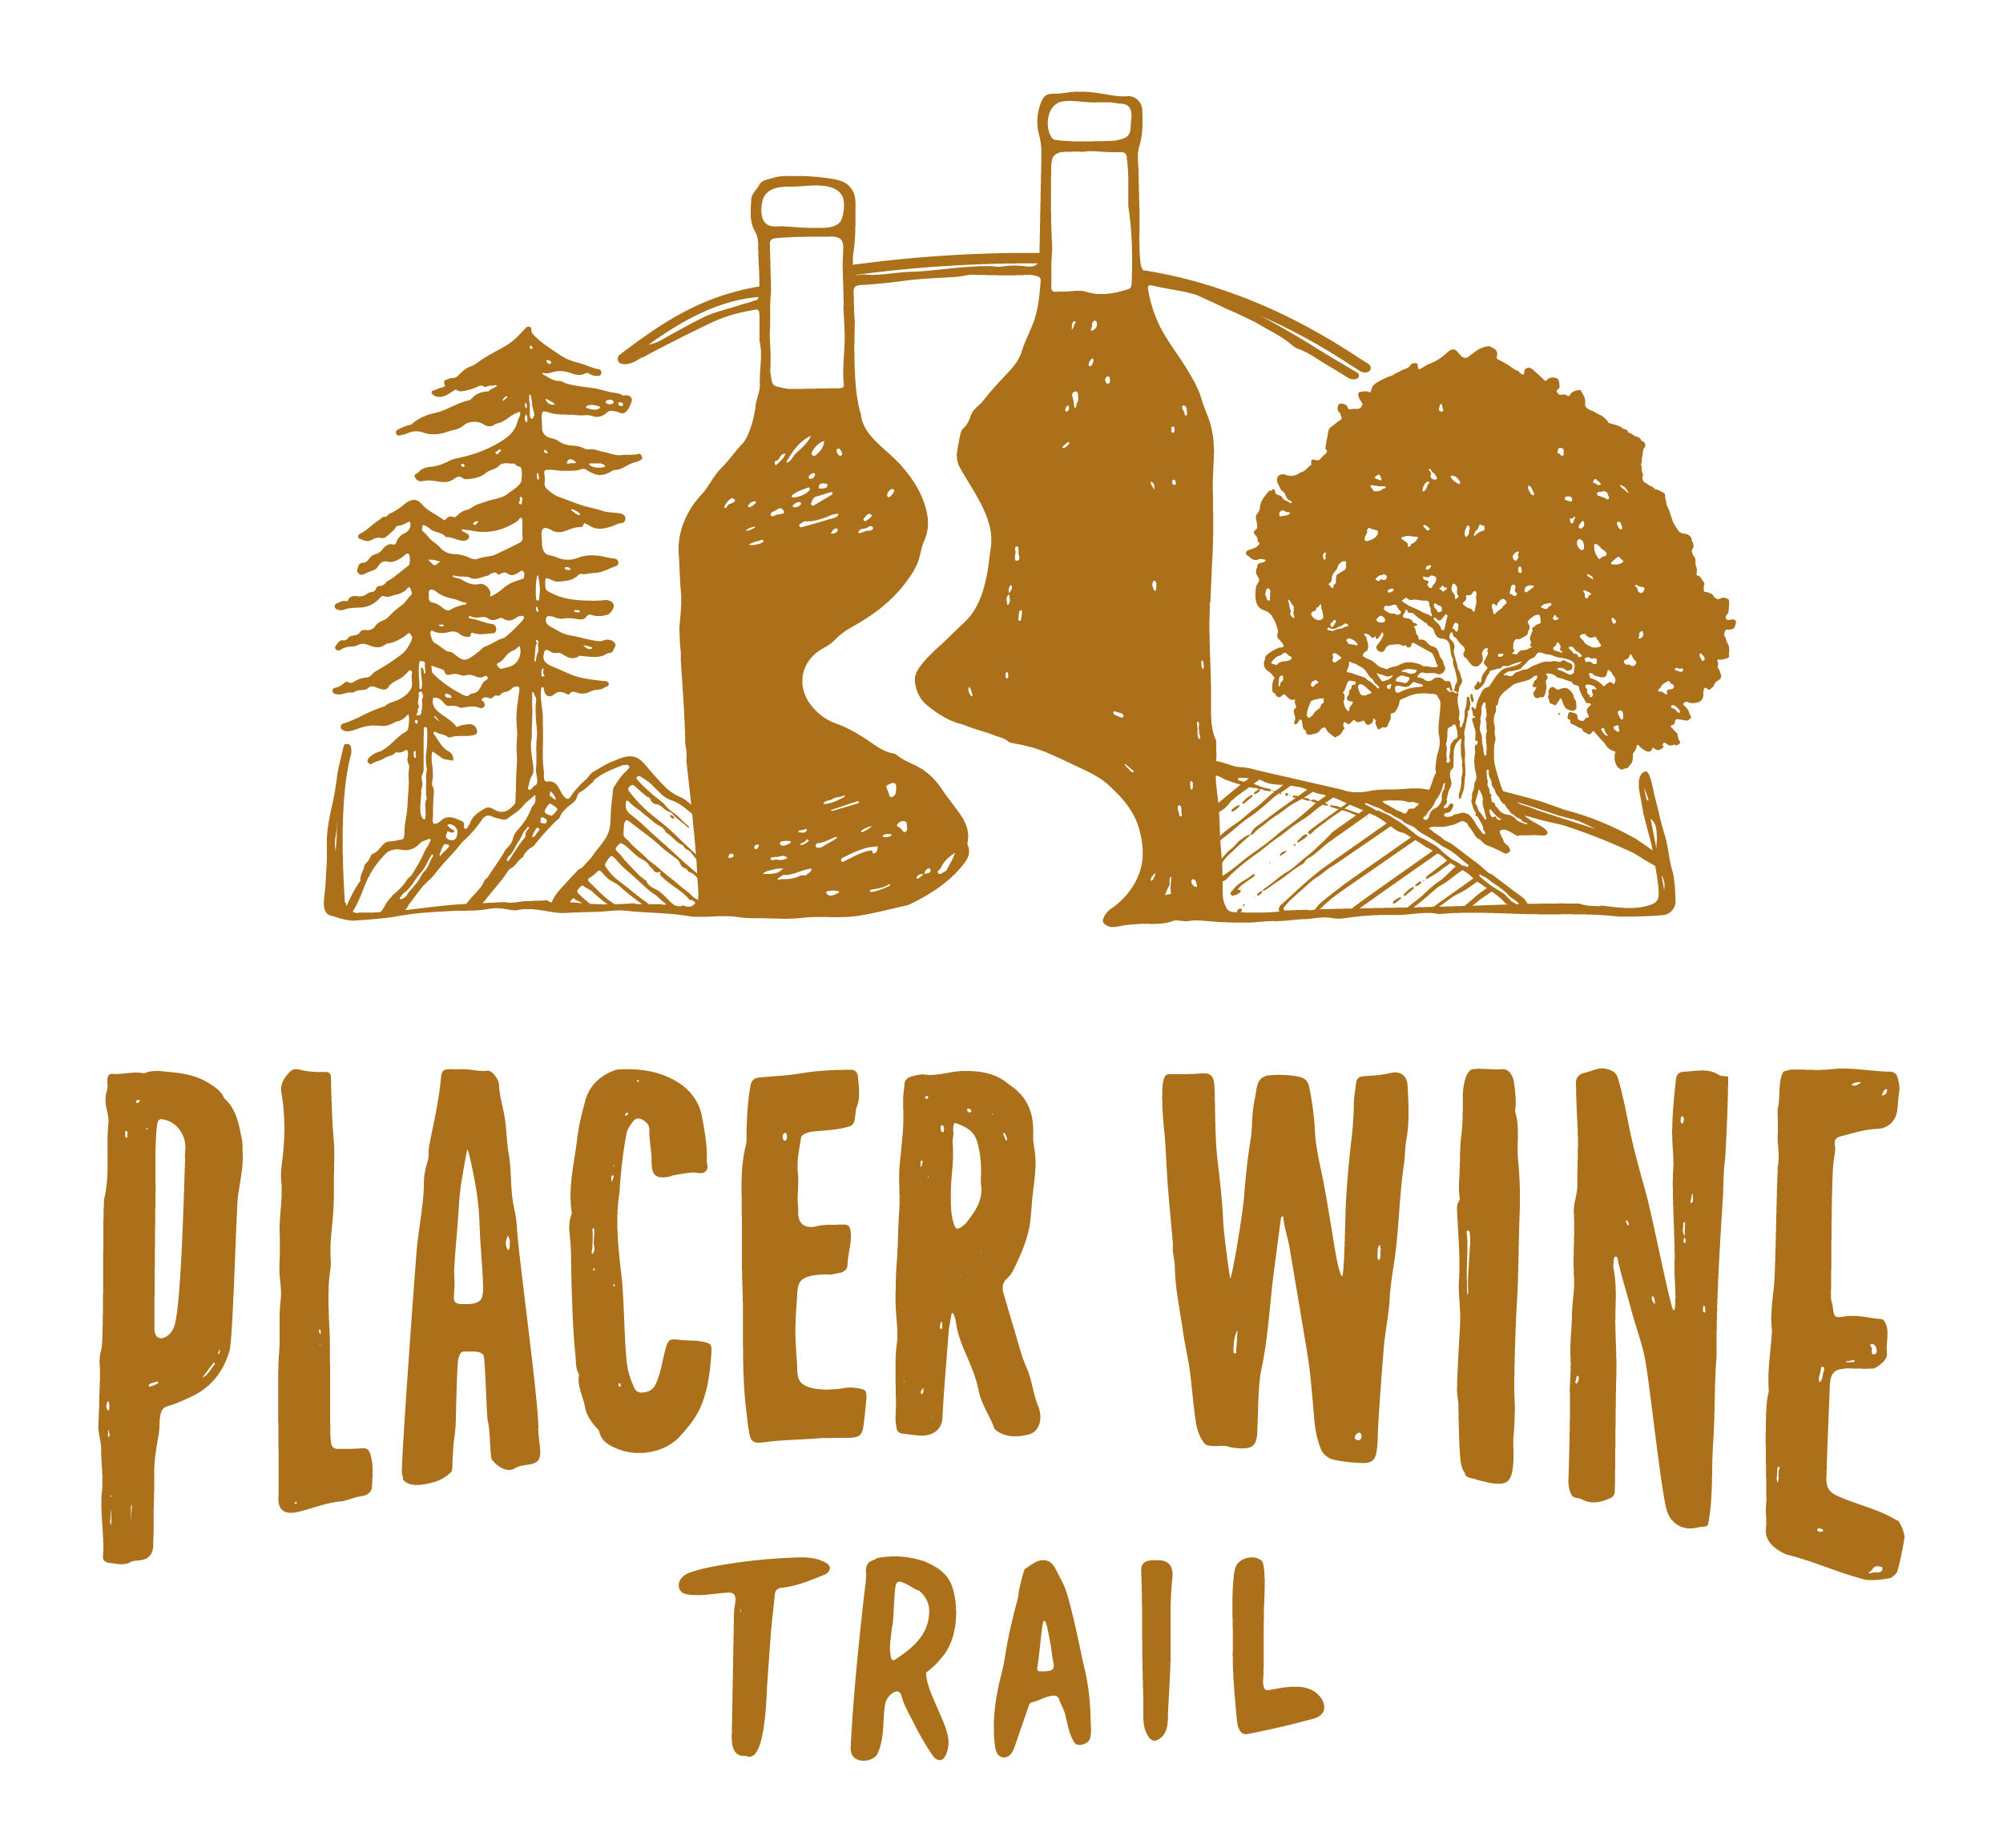 Placer_WIne_Trail_Logo.jpg